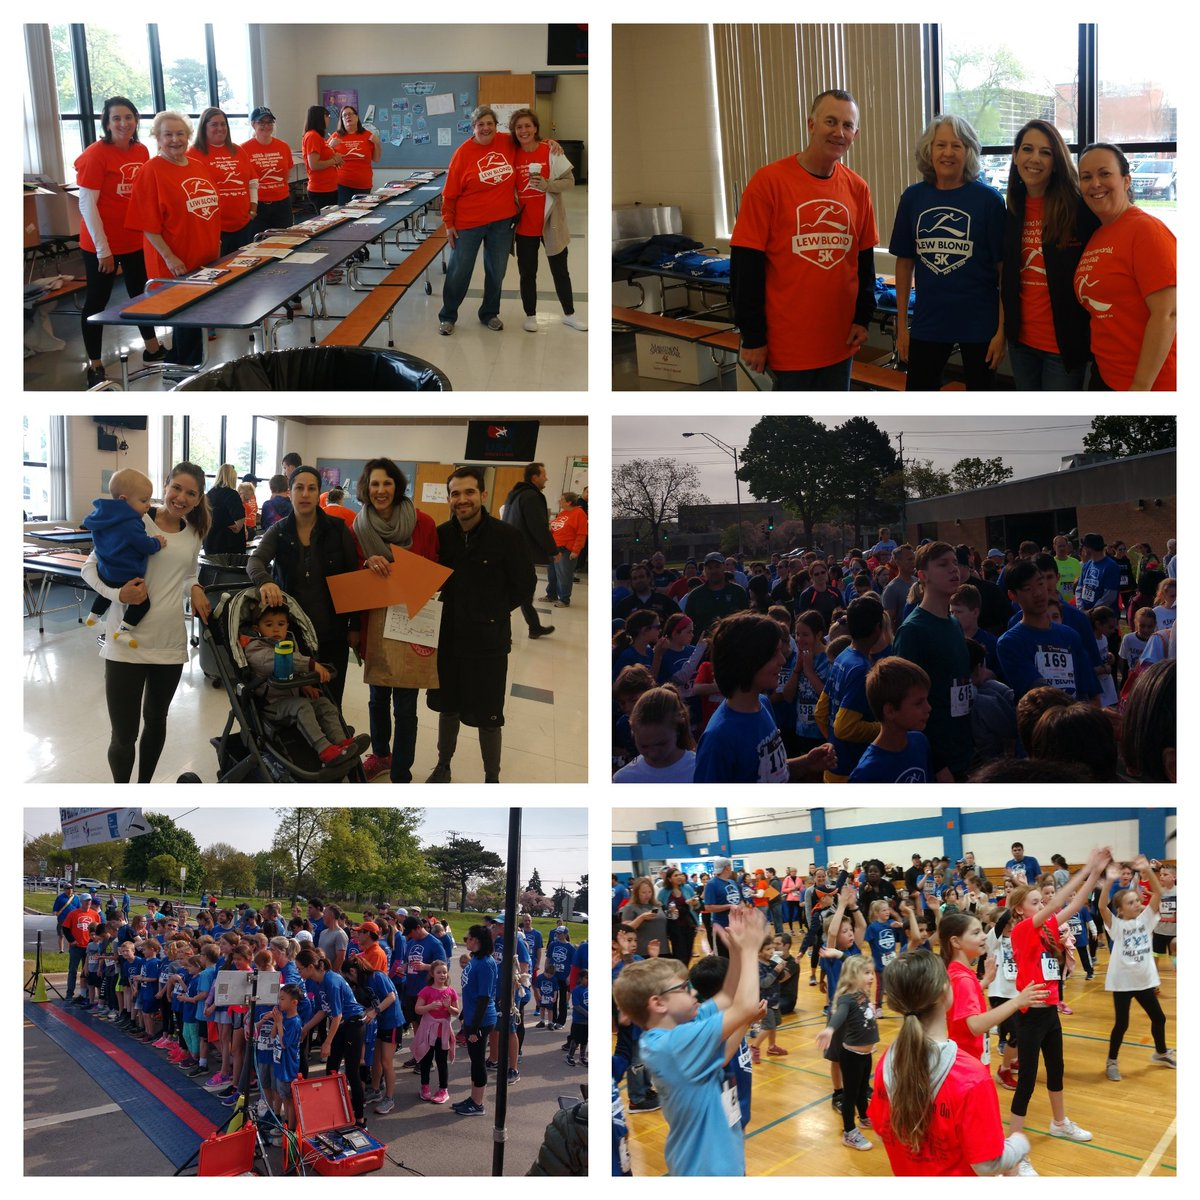 test Twitter Media - Thank you to the District 30 Family for another awesome Lew Blond Run! Around 700 runners enjoyed a beautiful morning run that benefits the Les Turner ALS Foundation and the Maple Playground! #d30learns https://t.co/8Xmv4dNR9O